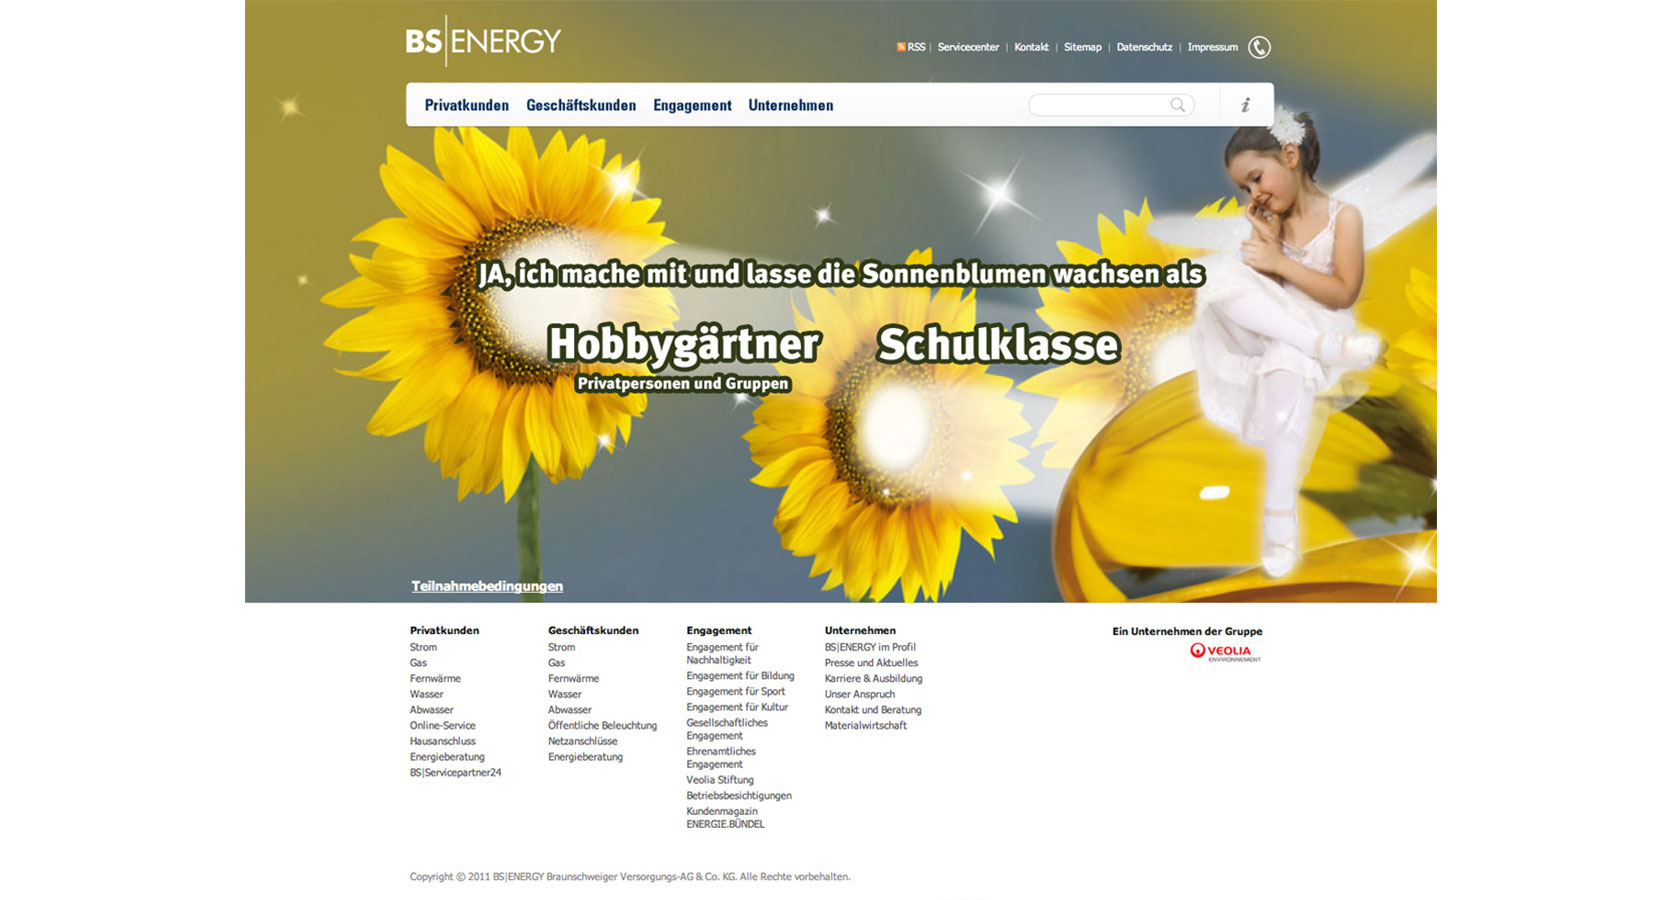 Screenshot der Online-Kampagne für BS|ENERGY